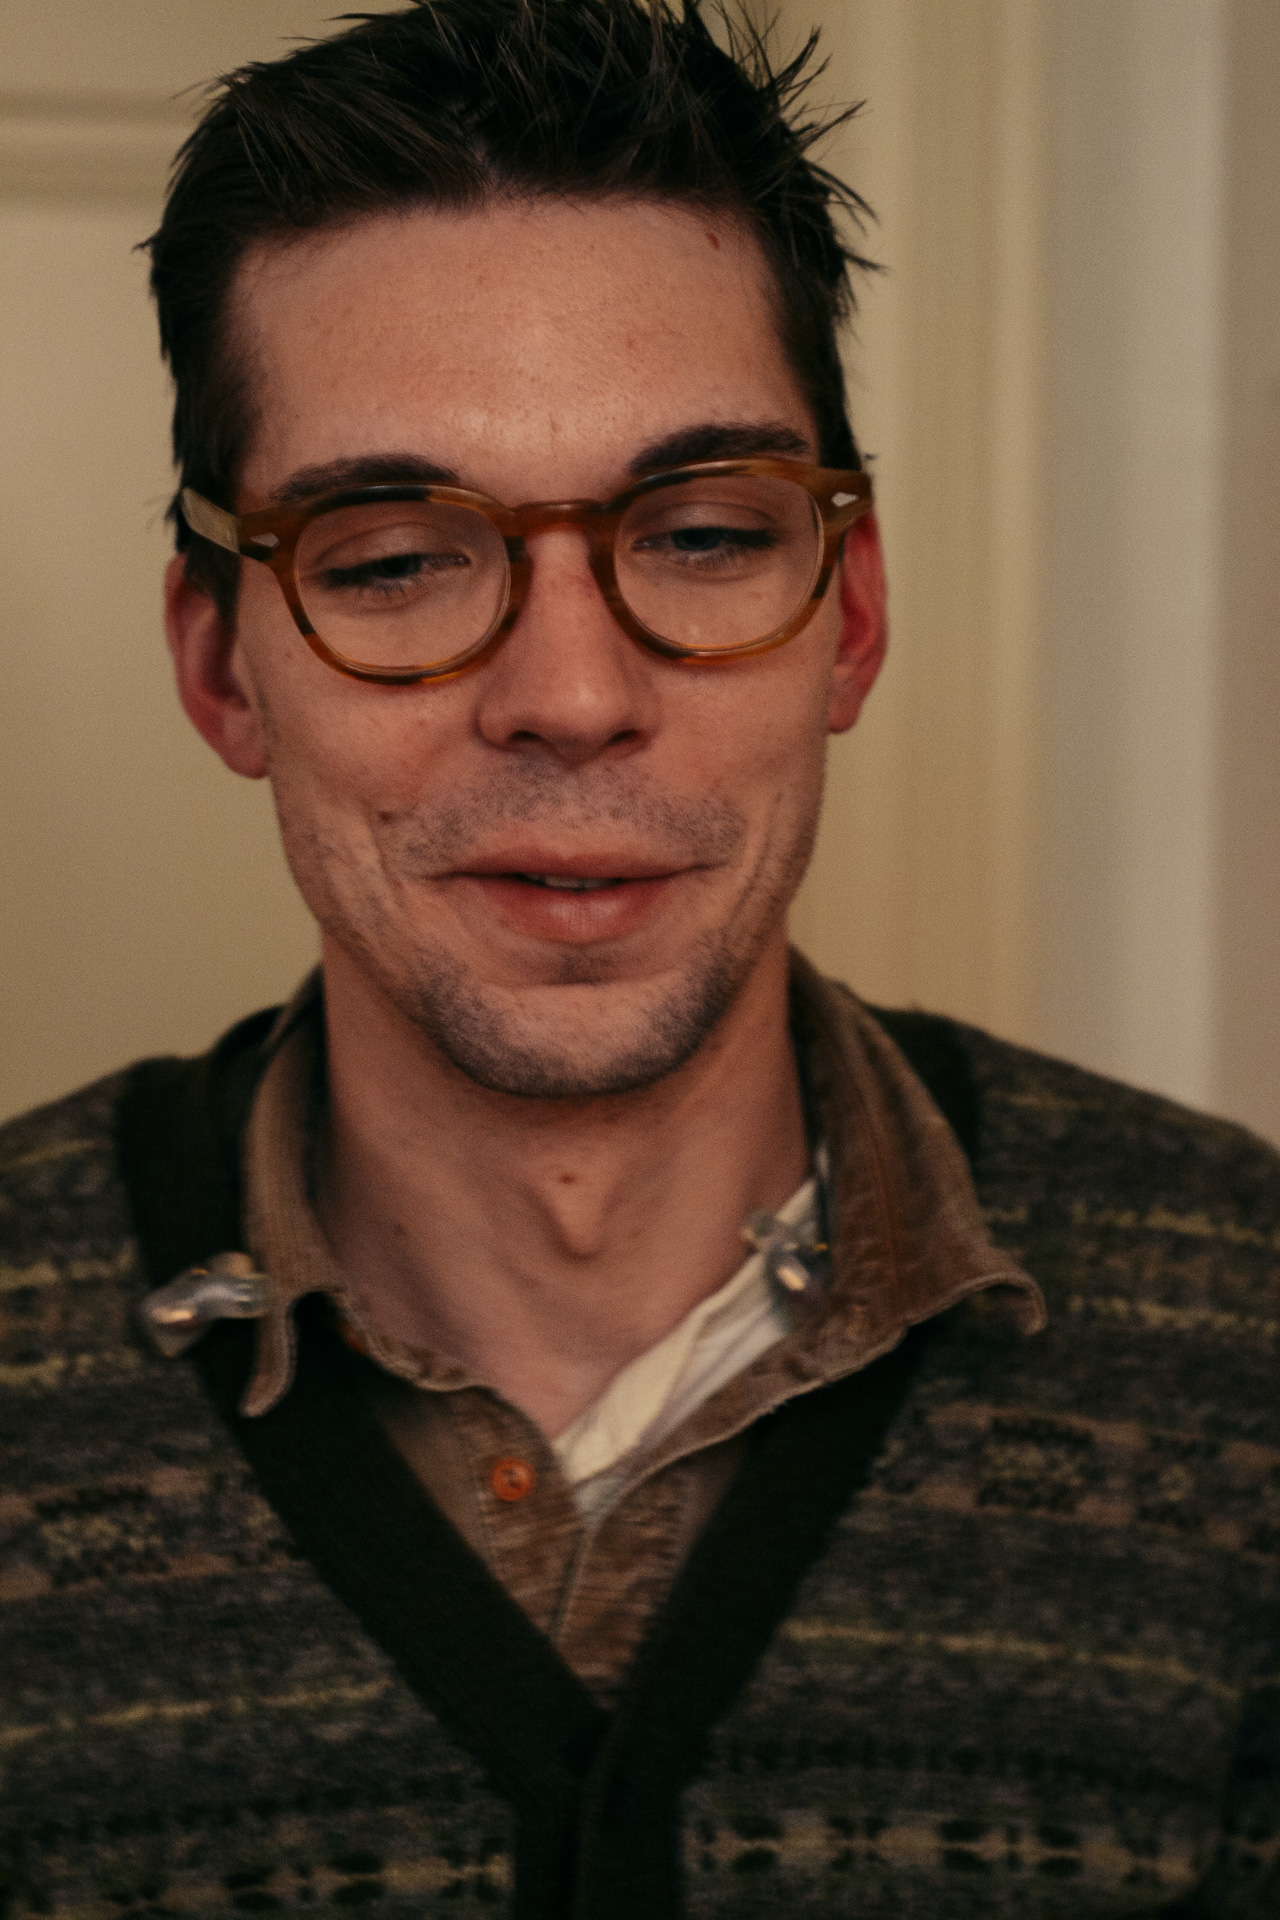 Justin Townes Earle (Photo by Matthijs van der Ven for The Influences)-0046